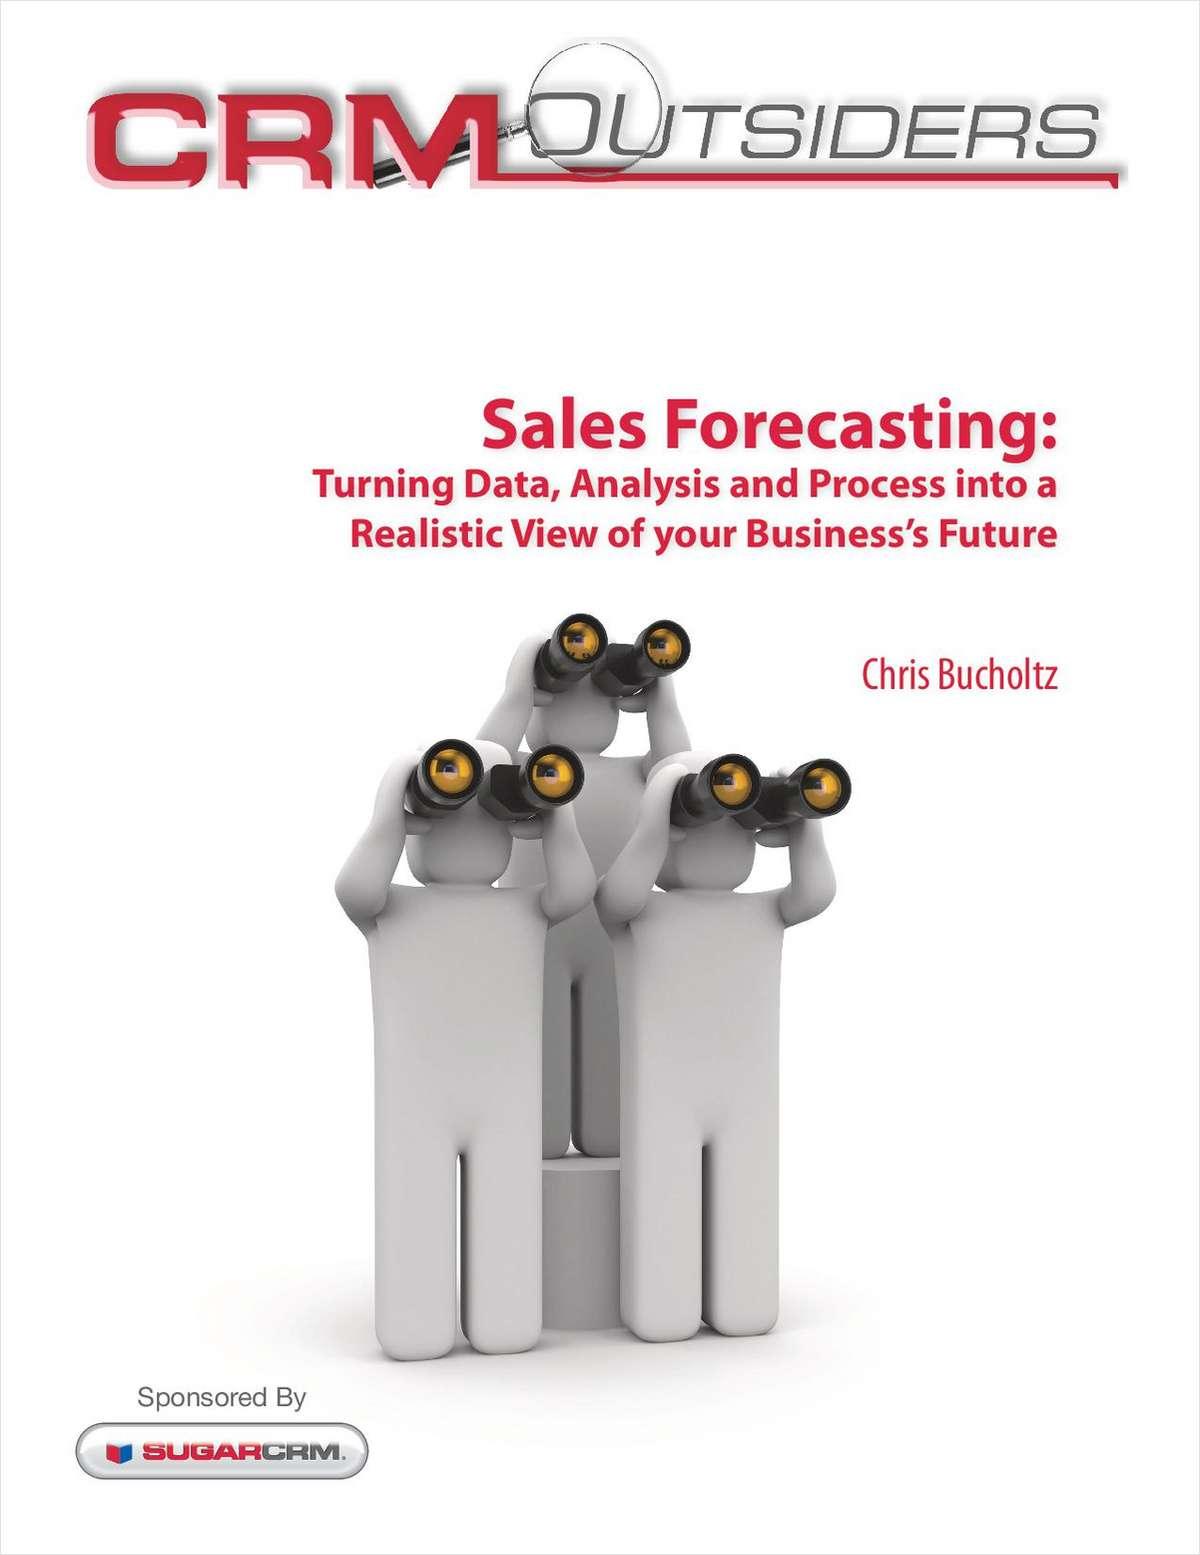 Sales Forecasting: Turning Data, Analysis and Process into a Realistic View of your Business's Future